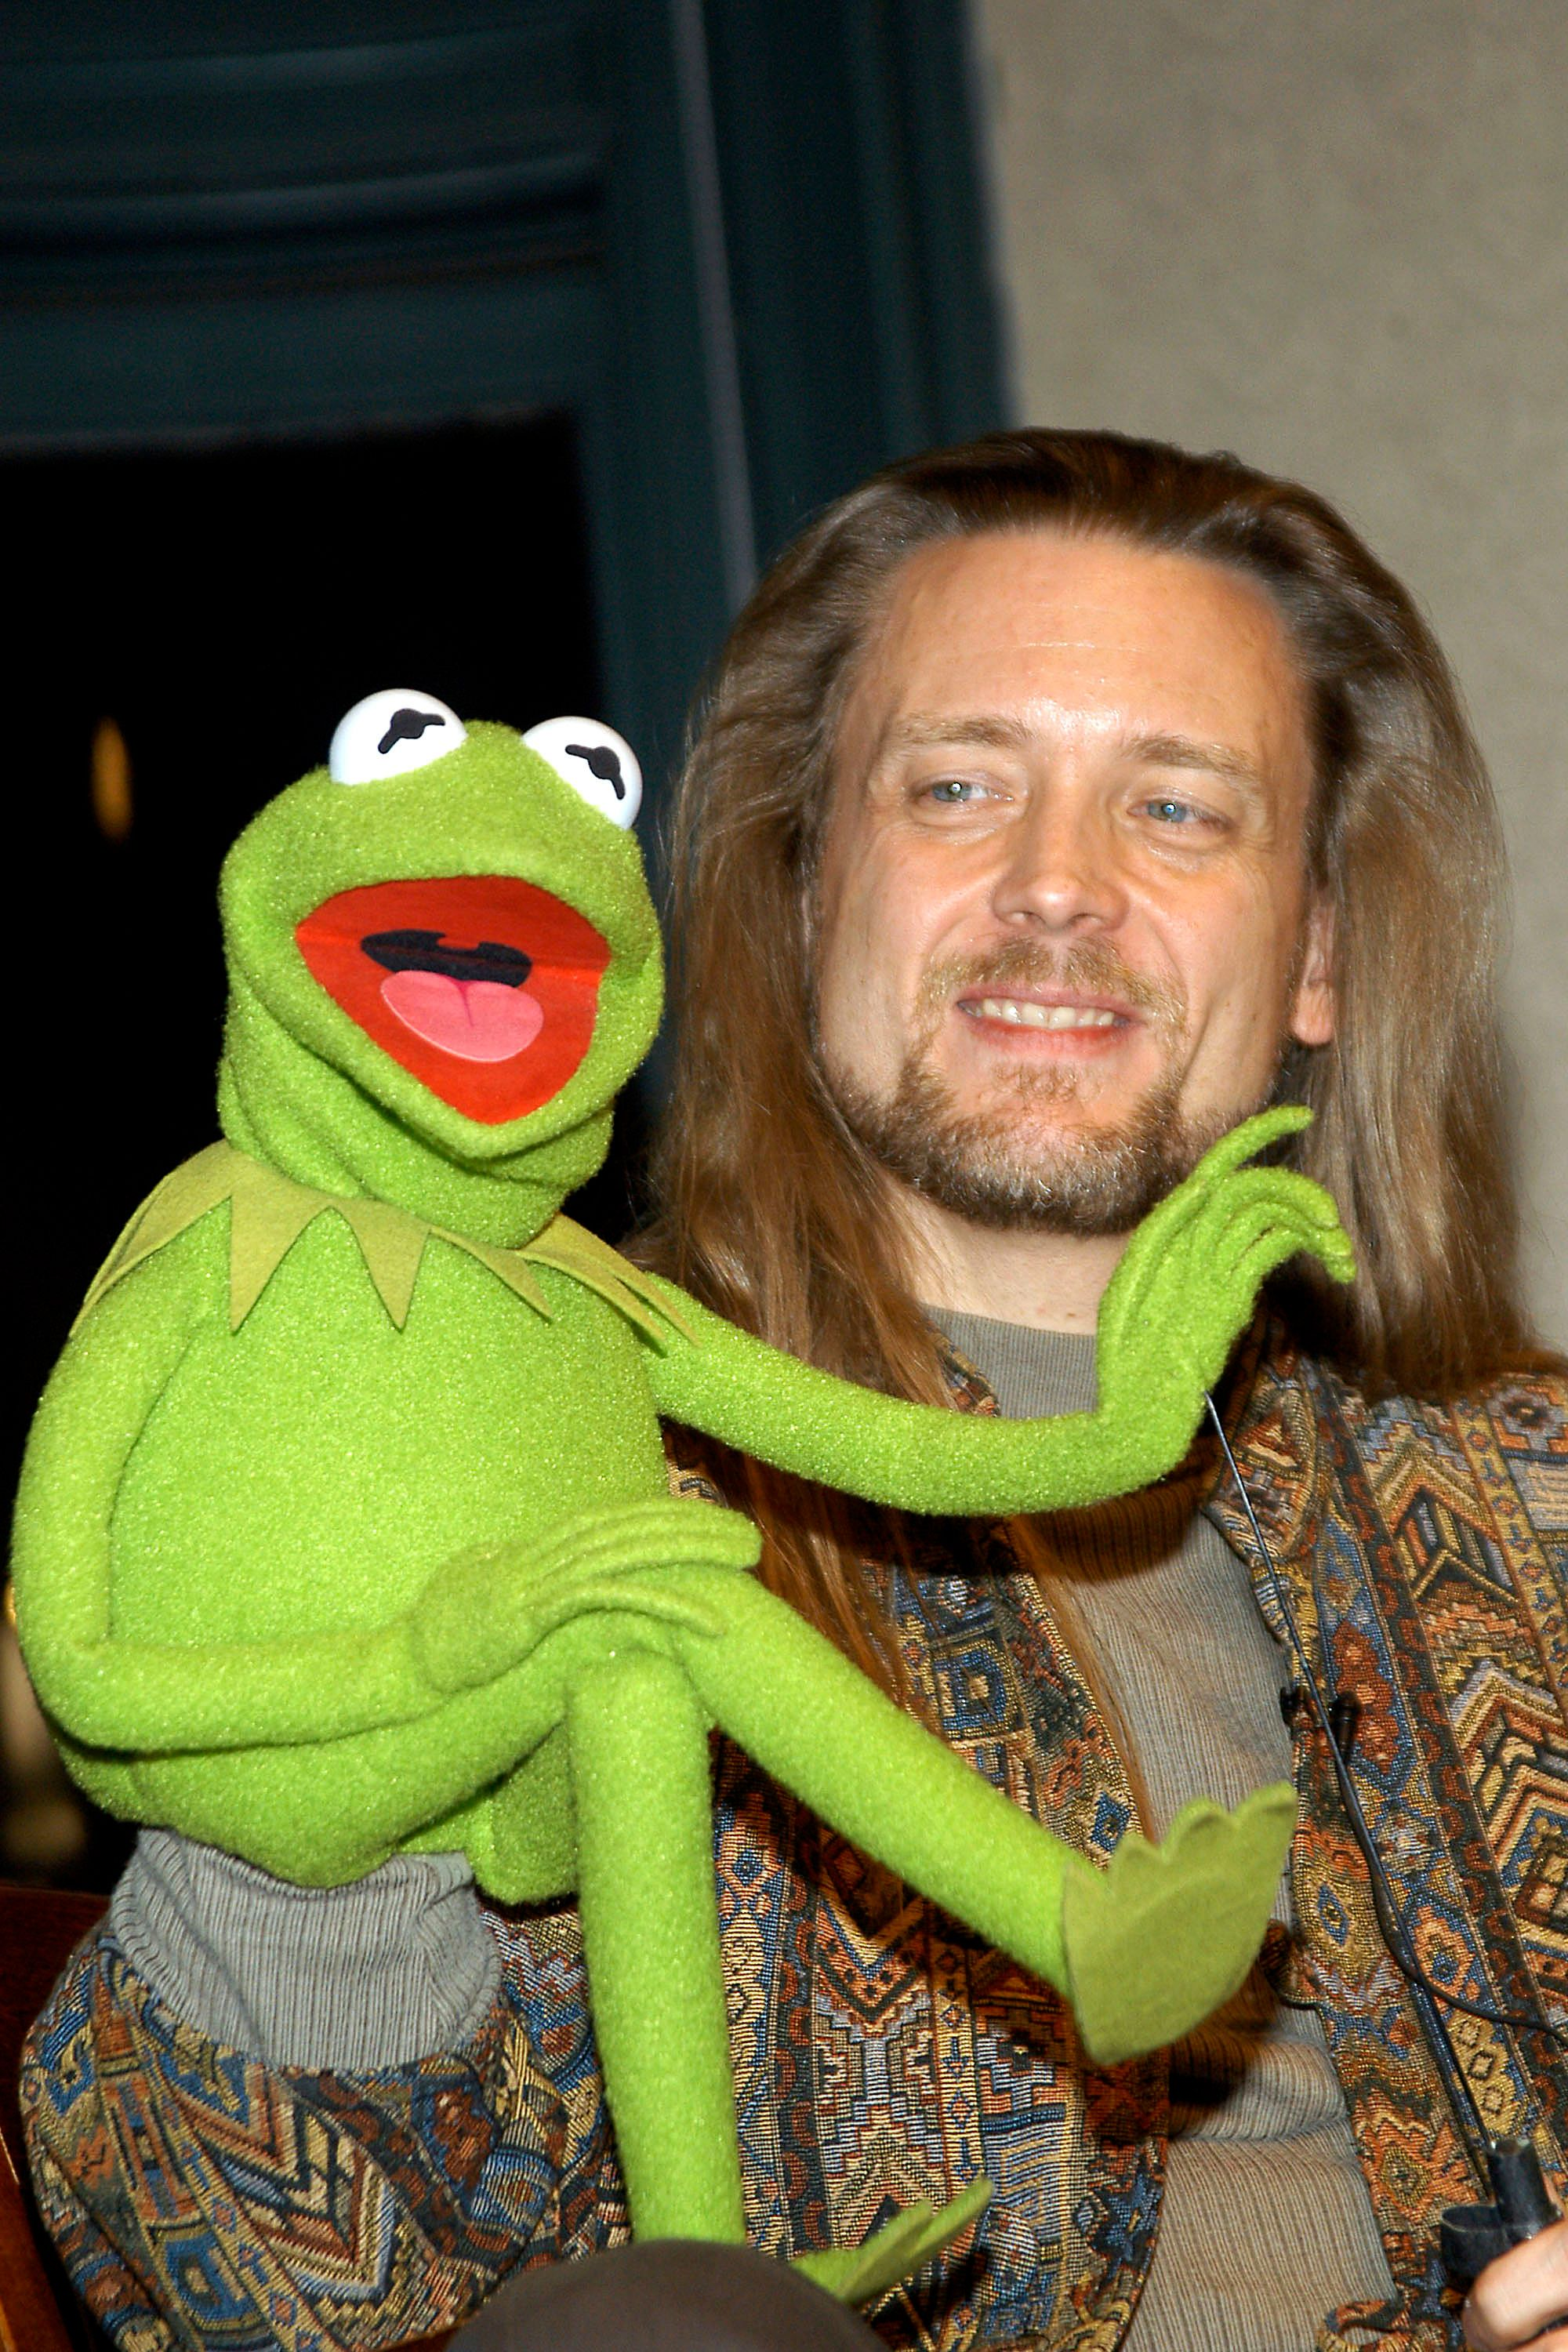 The Voice Of Kermit The Frog Claims He Was Fired After Being Replaced By Disney